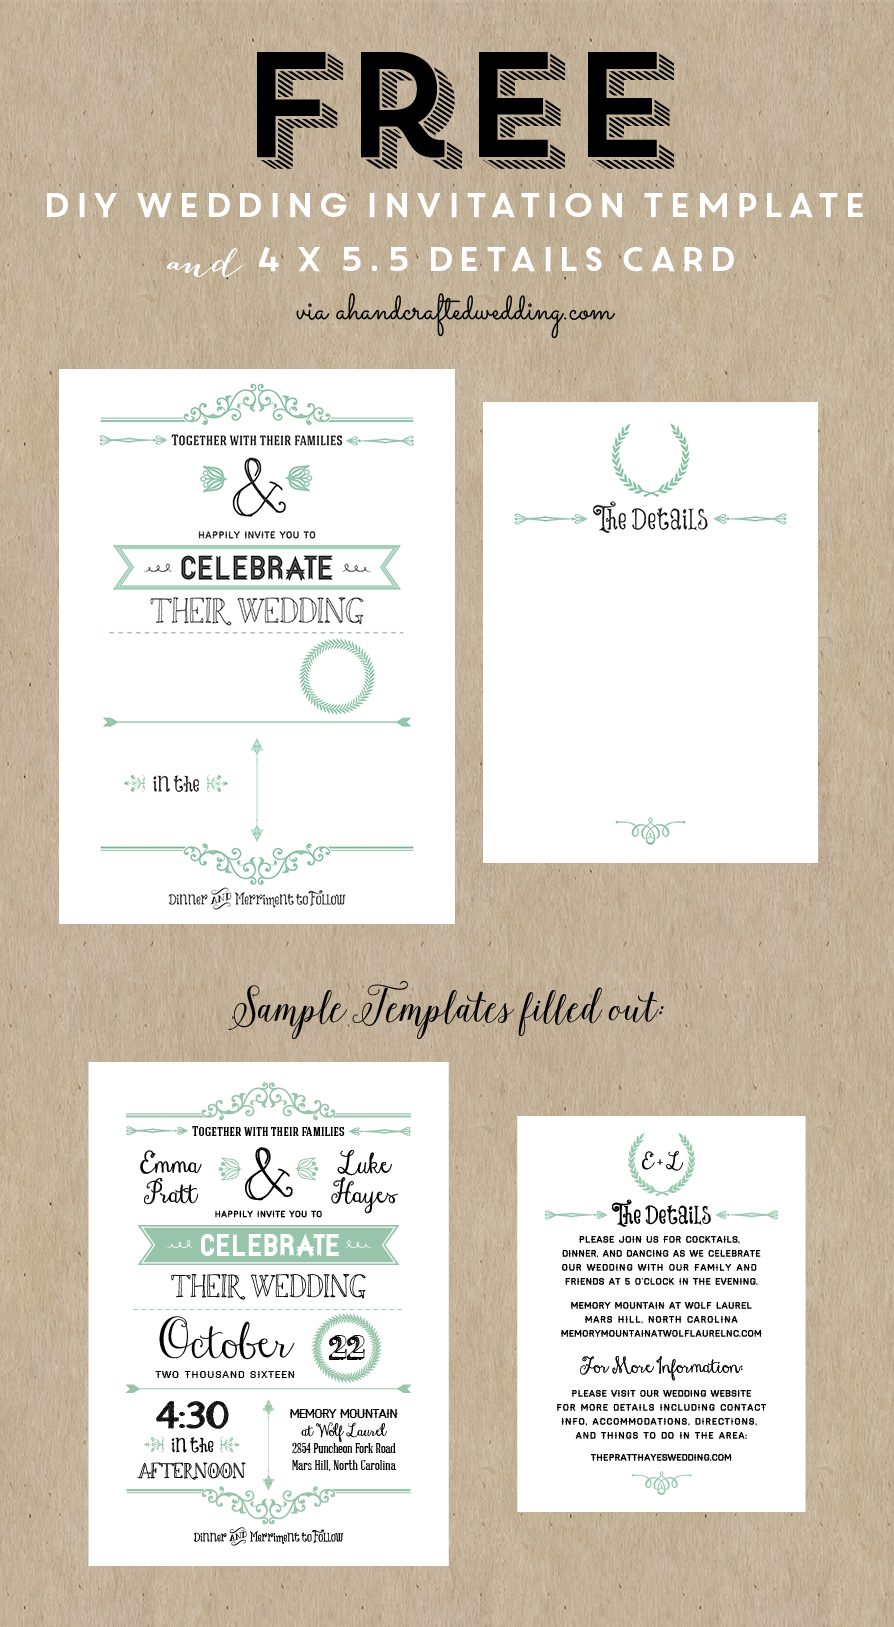 wedding invitation template via ahandcraftedwedding com wedding invitation template via ahandcraftedwedding com wedding invitation vintageposter